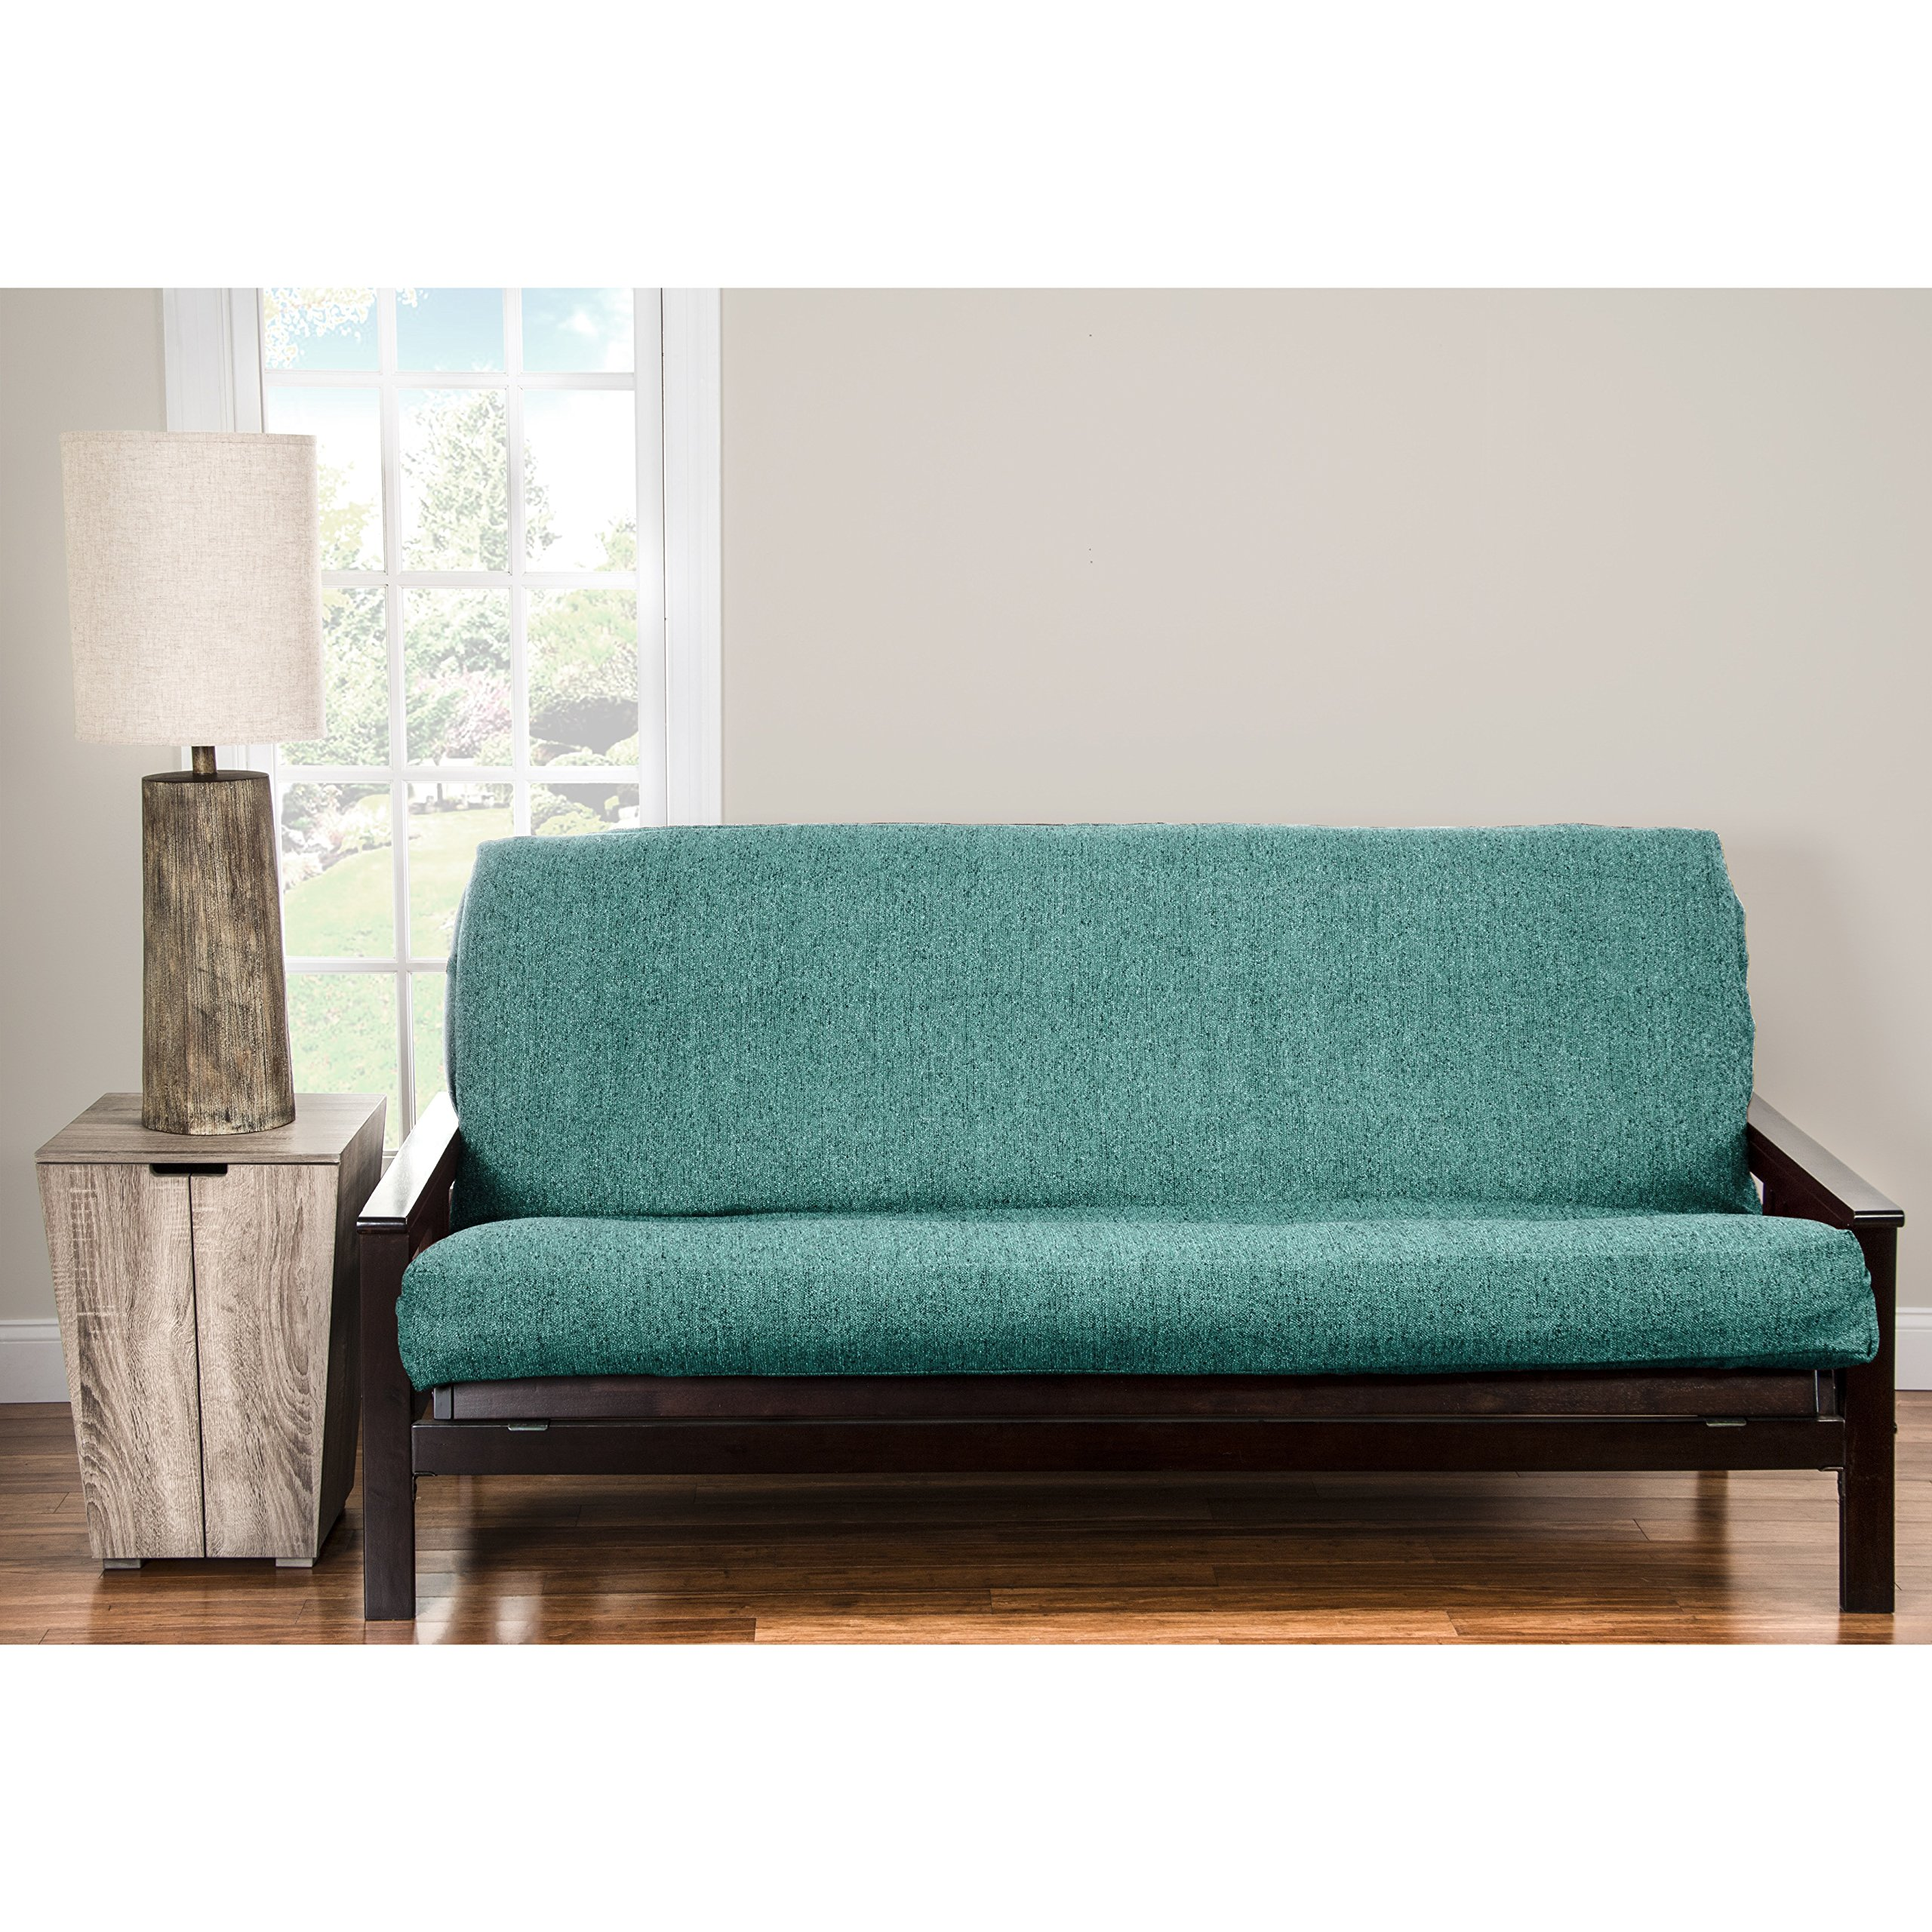 SIScovers PoloGear Belmont Turquoise Homespun Futon Cover - Turqoise Queen by SIS Covers